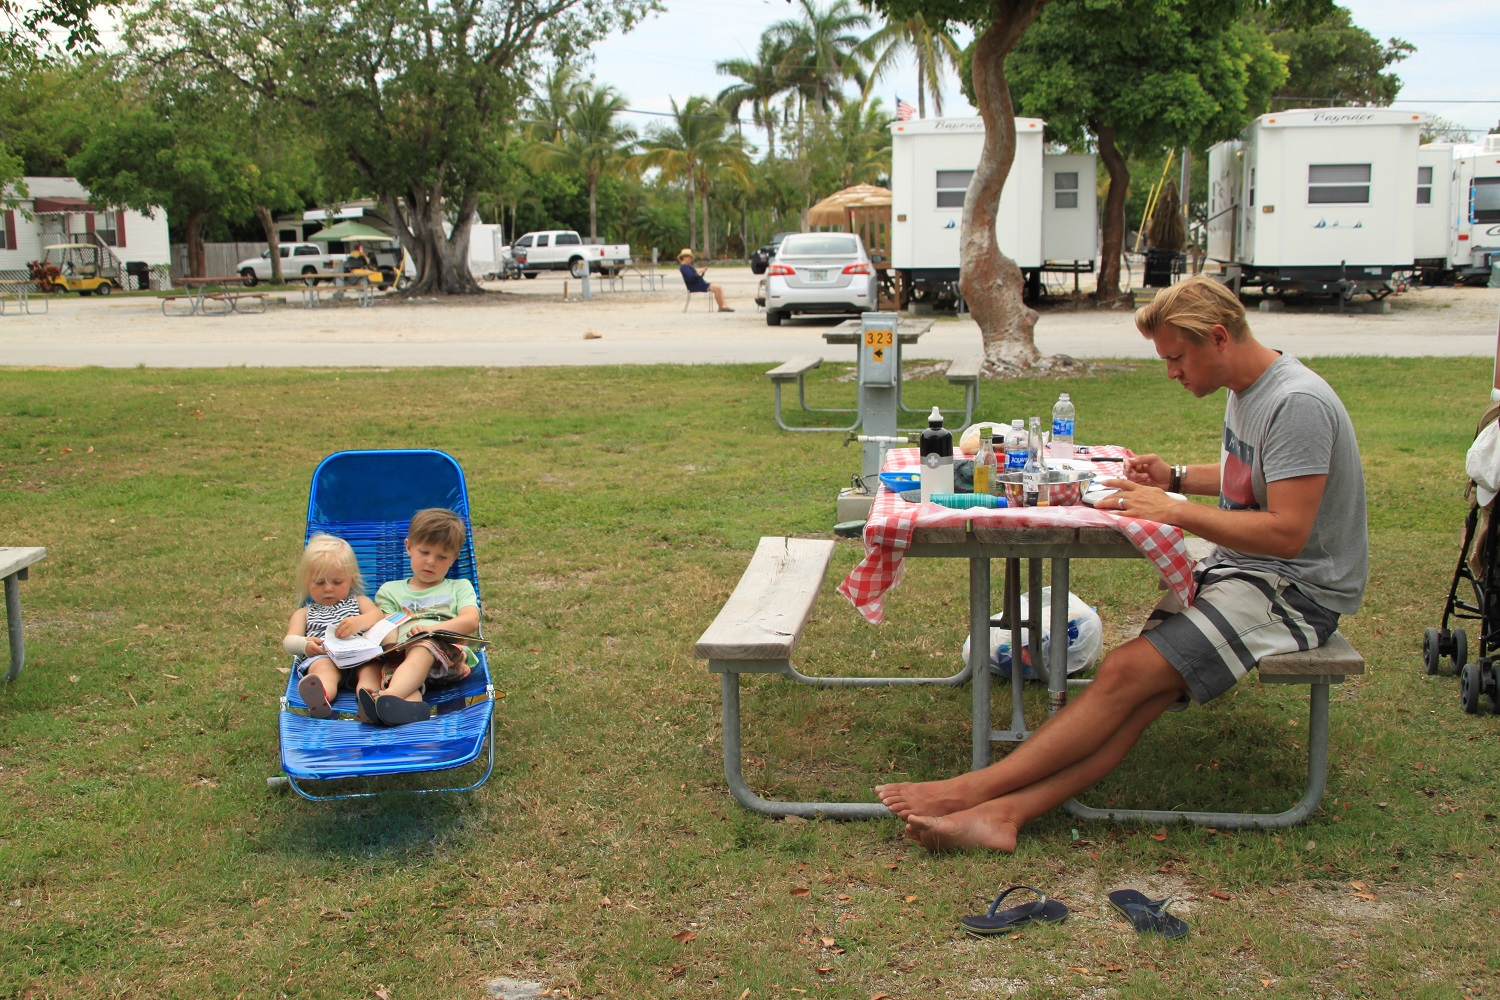 Kids Love Travel: Camper